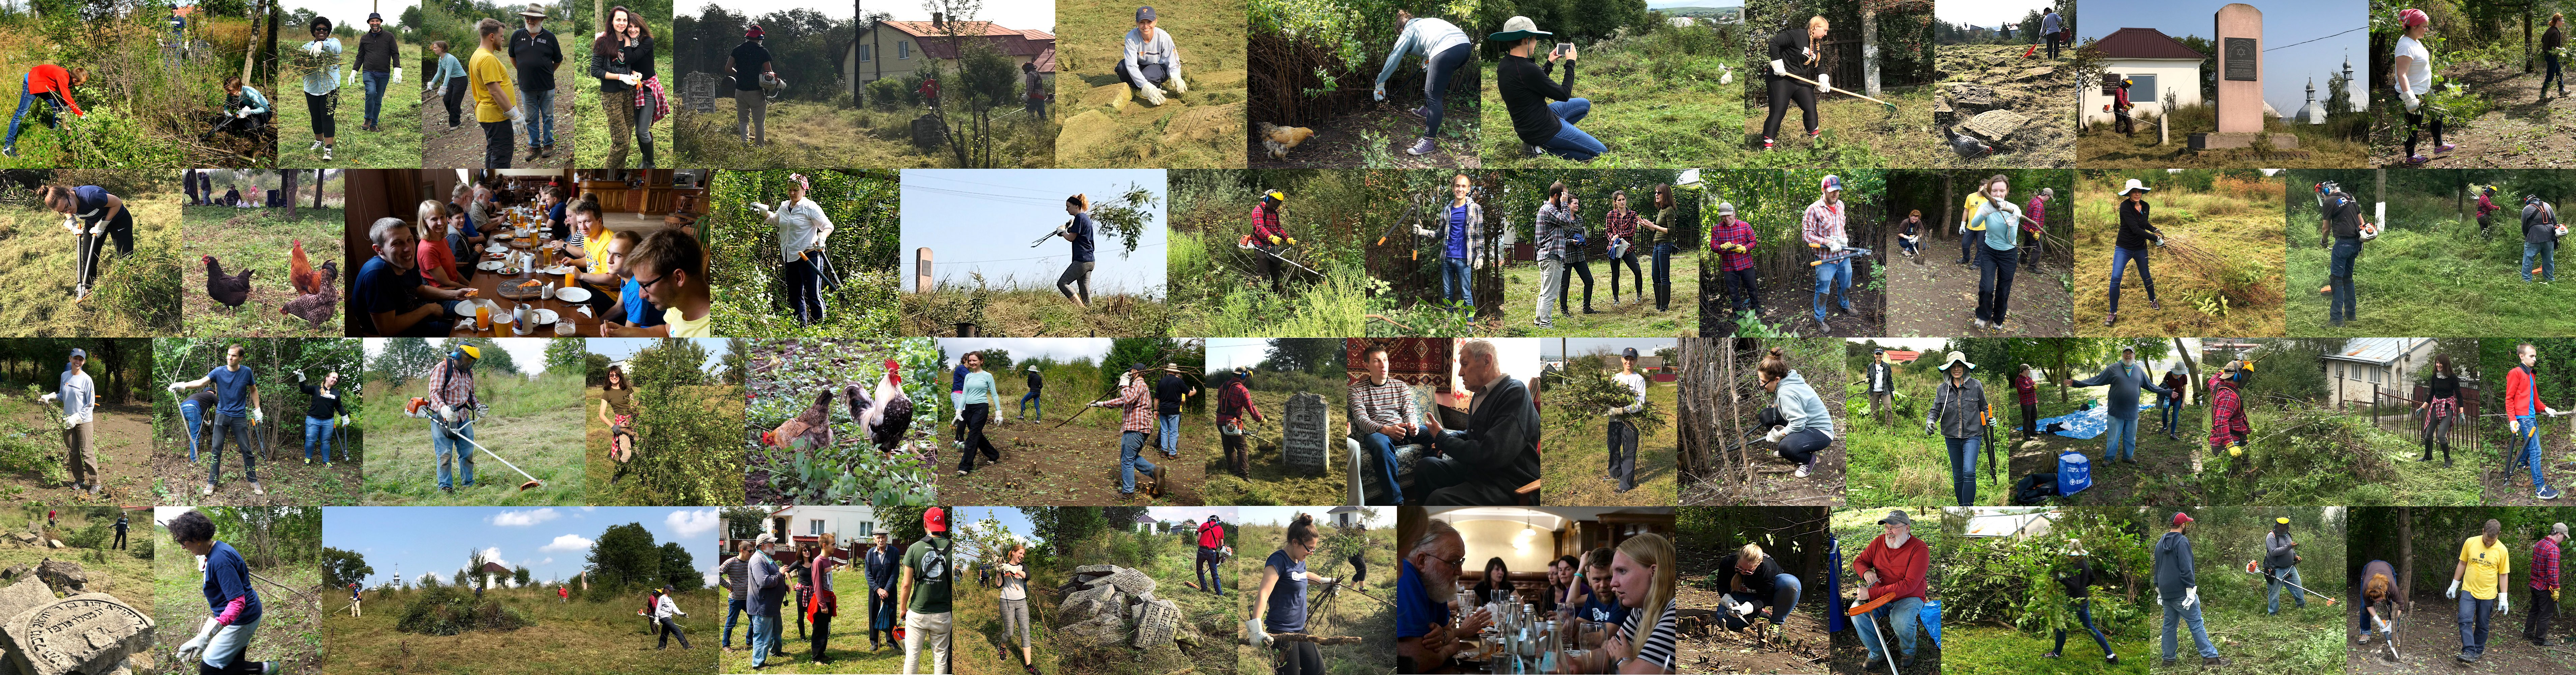 A collage of images from our week working together in Rohatyn's old Jewish cemetery